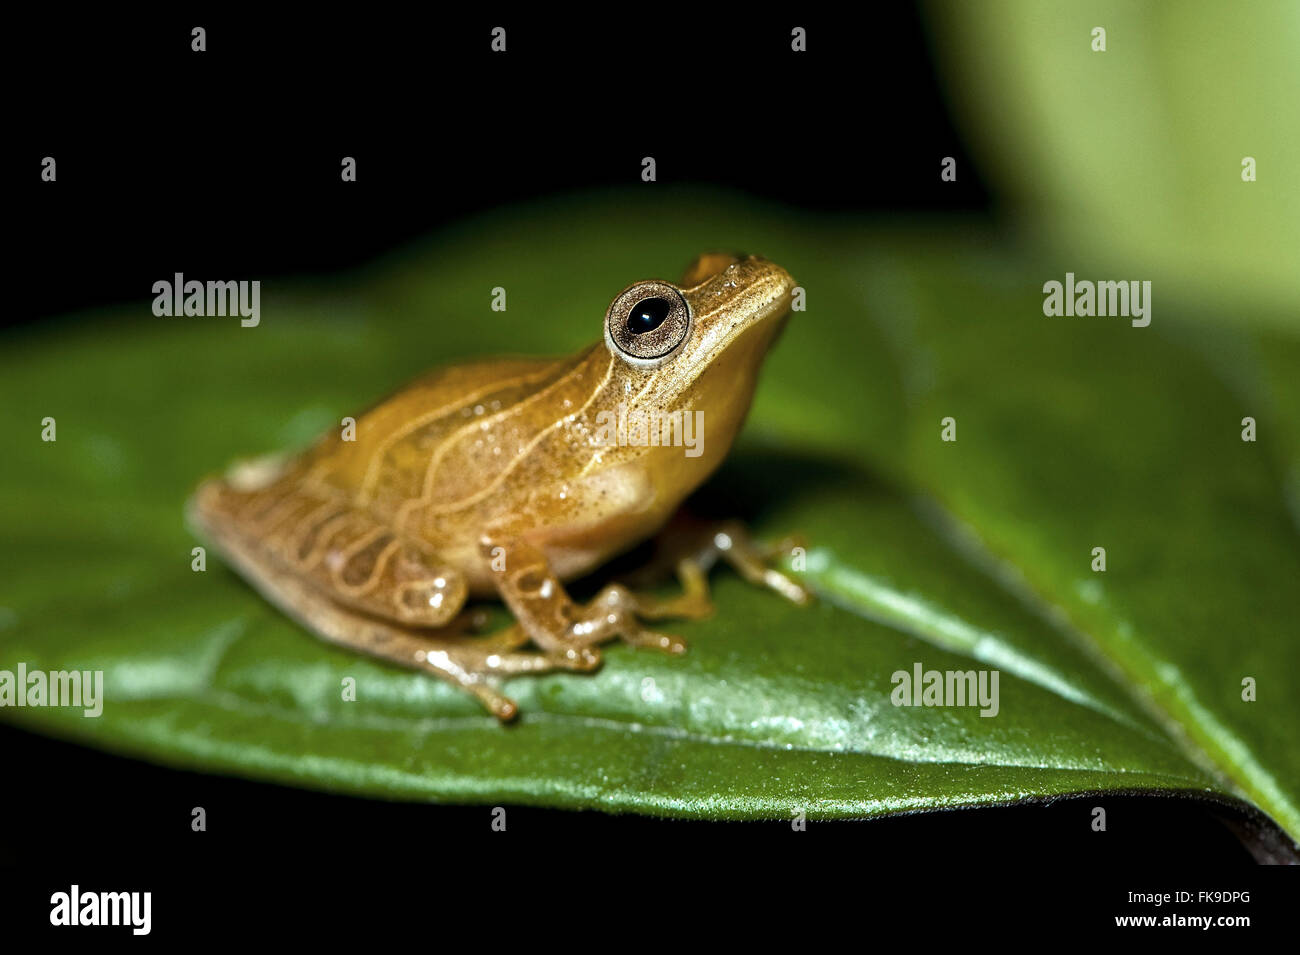 Frog with 4 inches long - Dendropsophus old minutus Hyla minuta - Stock Image